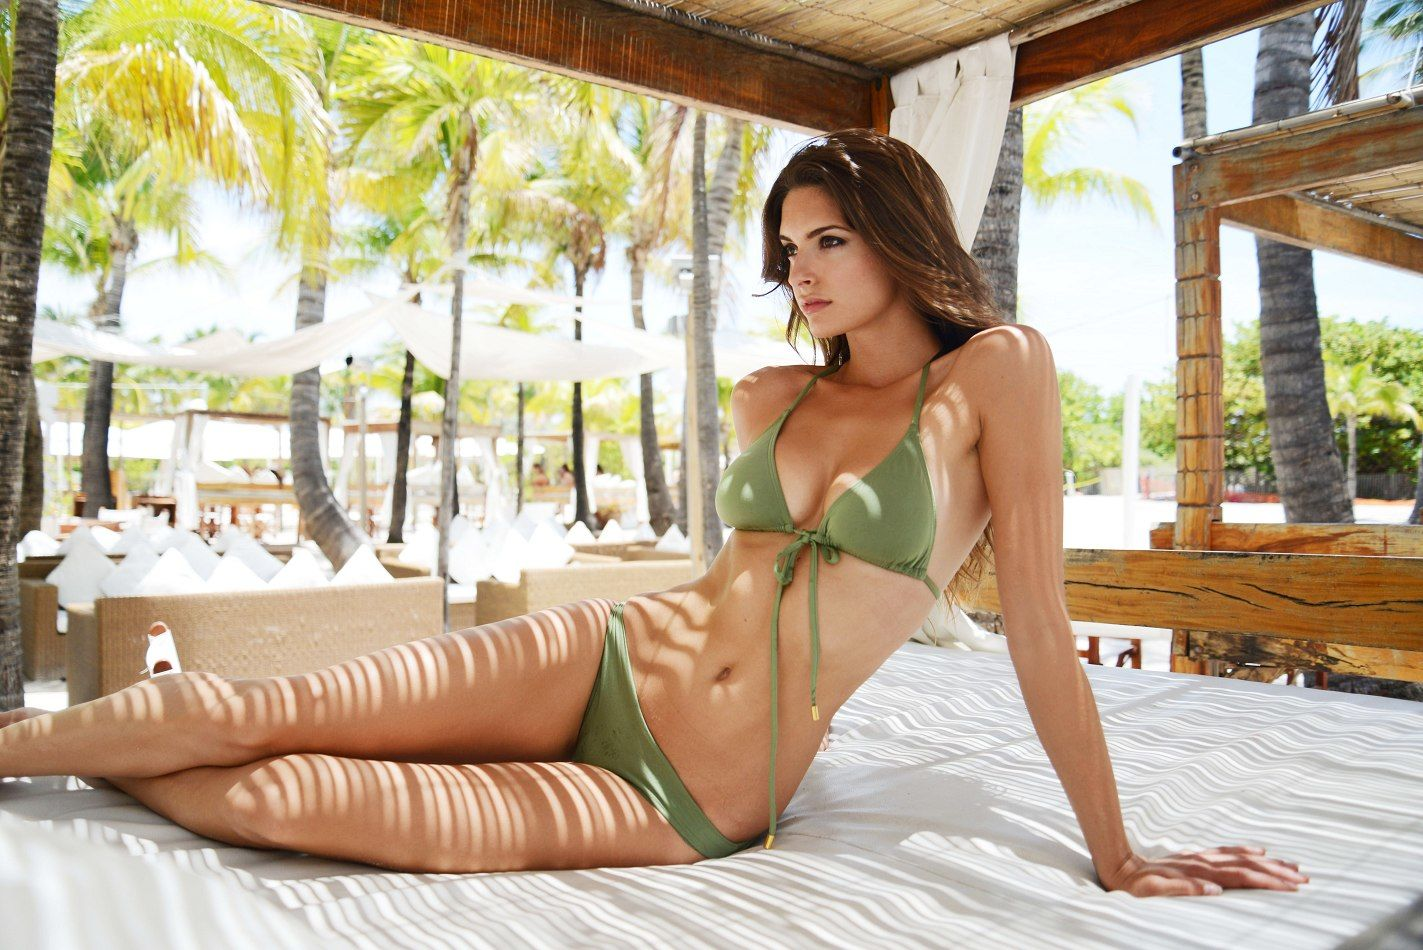 Pictures Lis Giolito nude (14 foto and video), Ass, Bikini, Selfie, swimsuit 2020